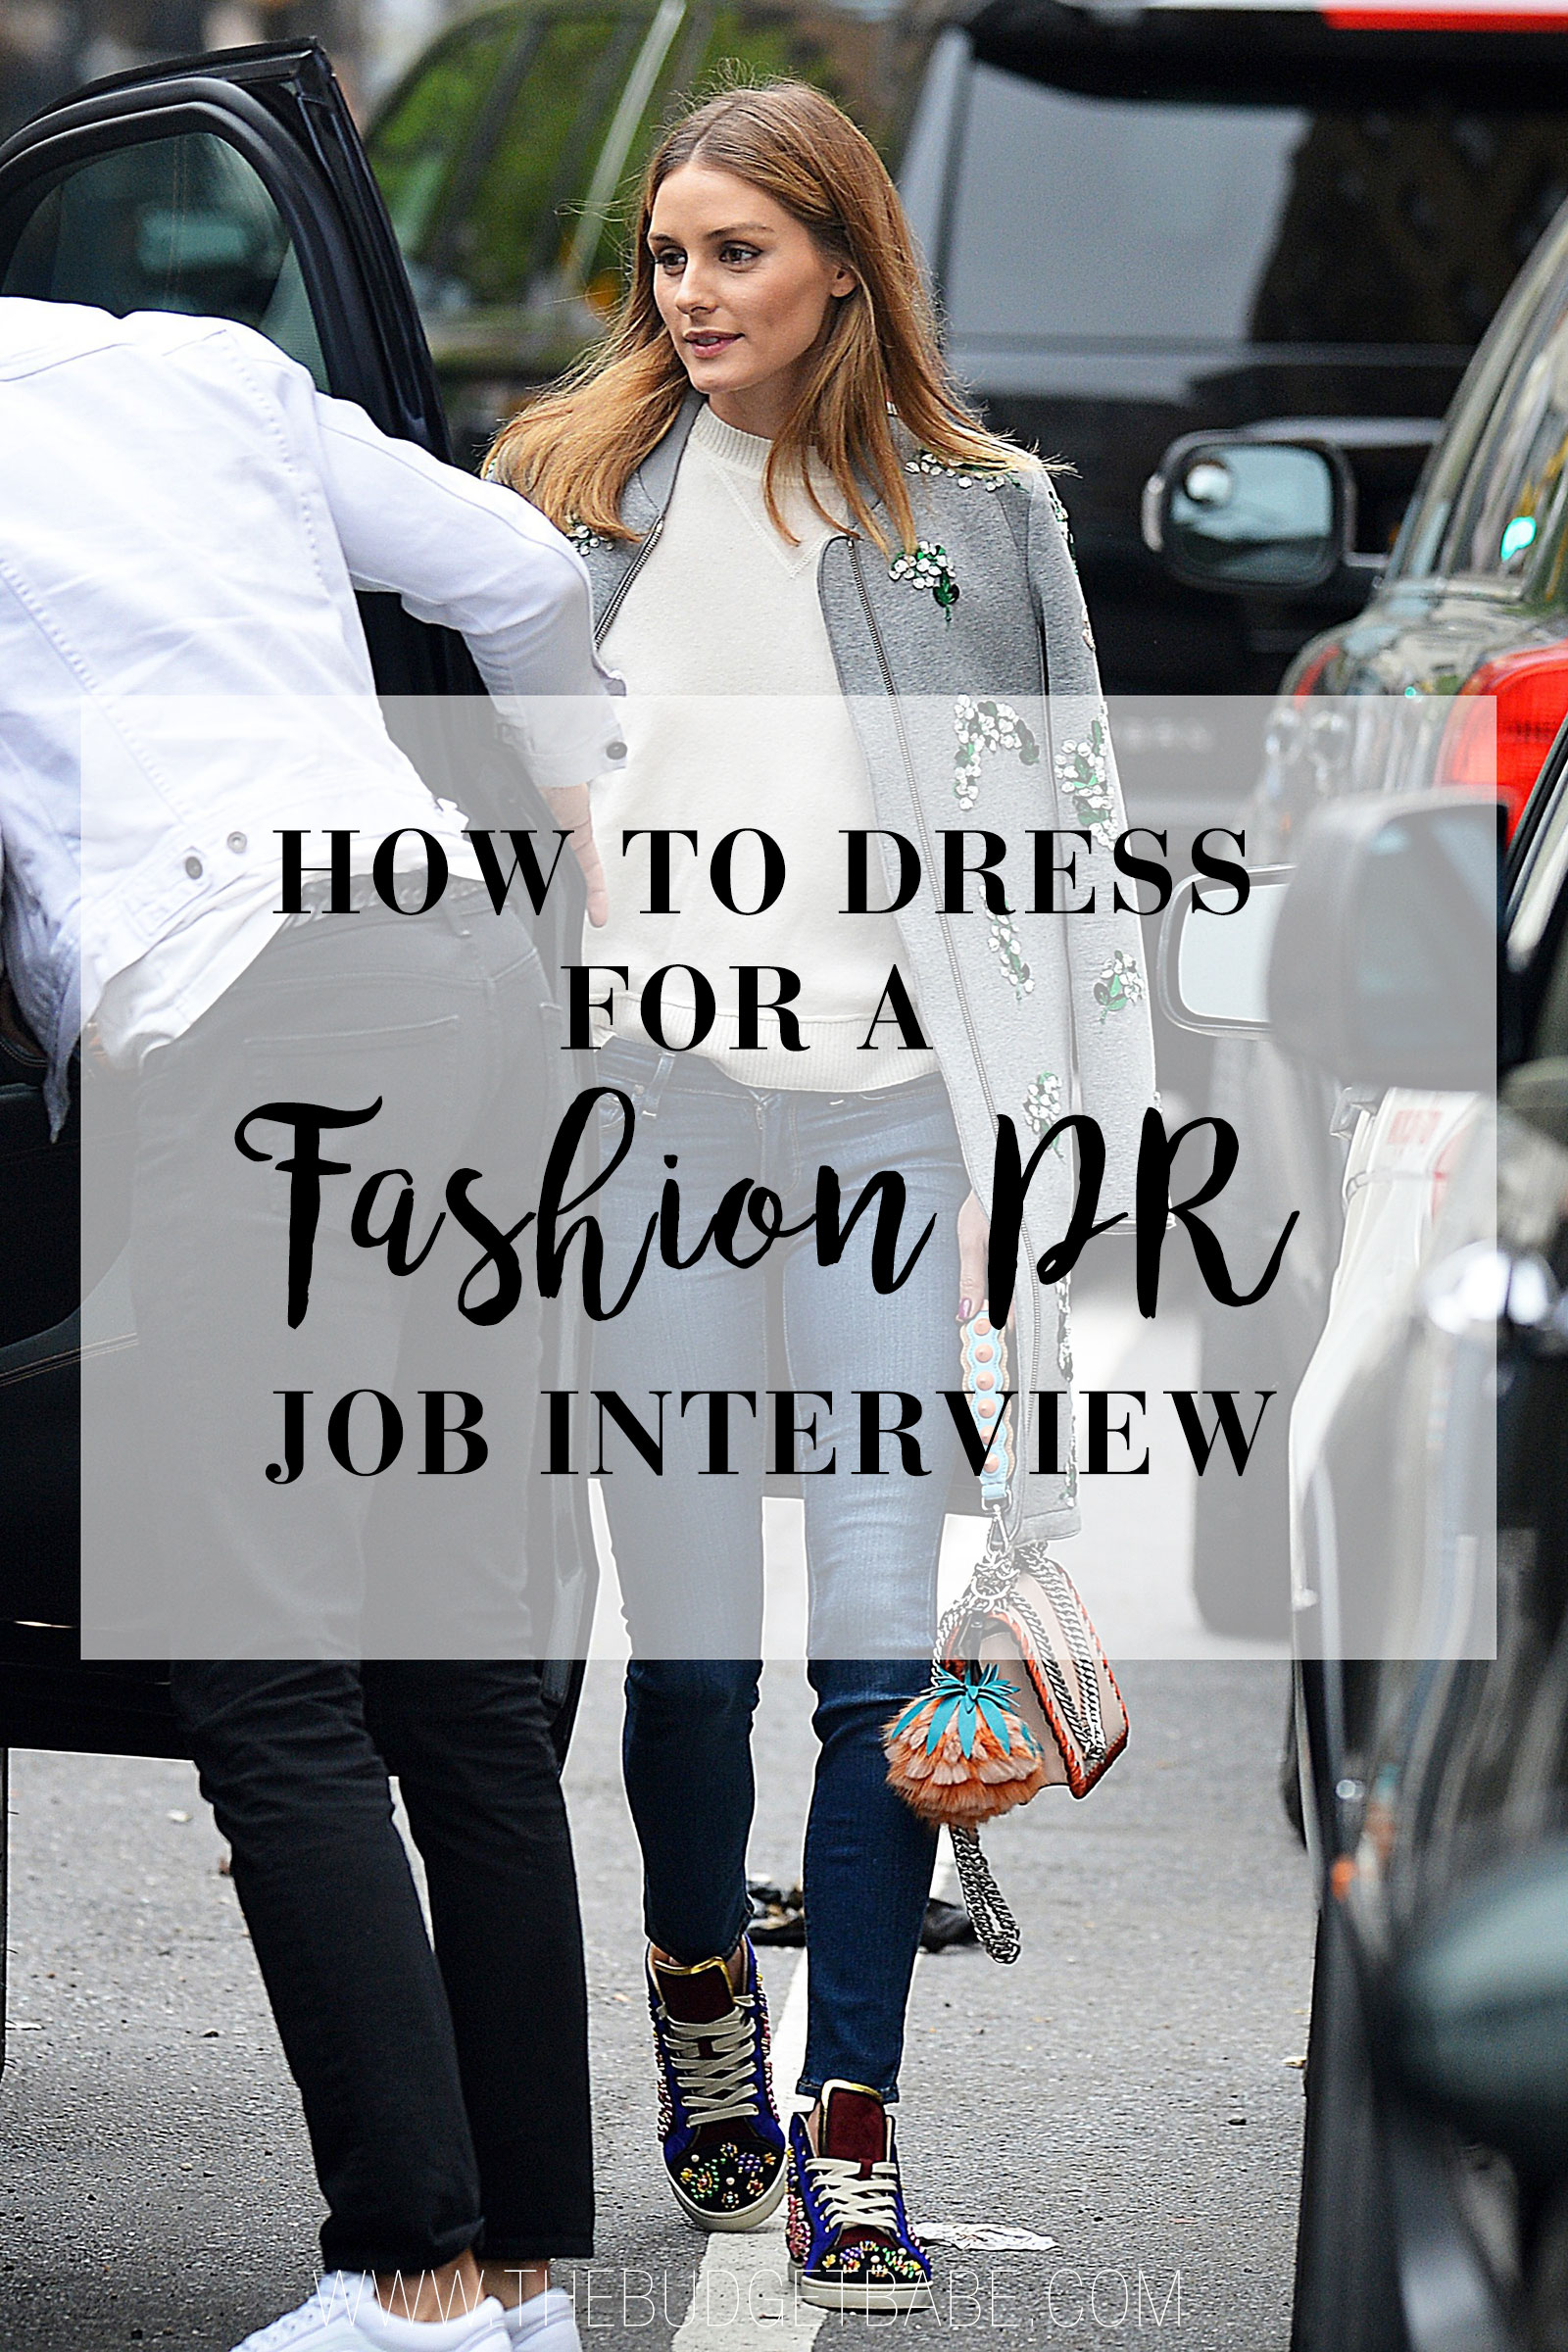 No clue what to wear for your job interview? Here are tips and outfit ideas that will help you land that job!